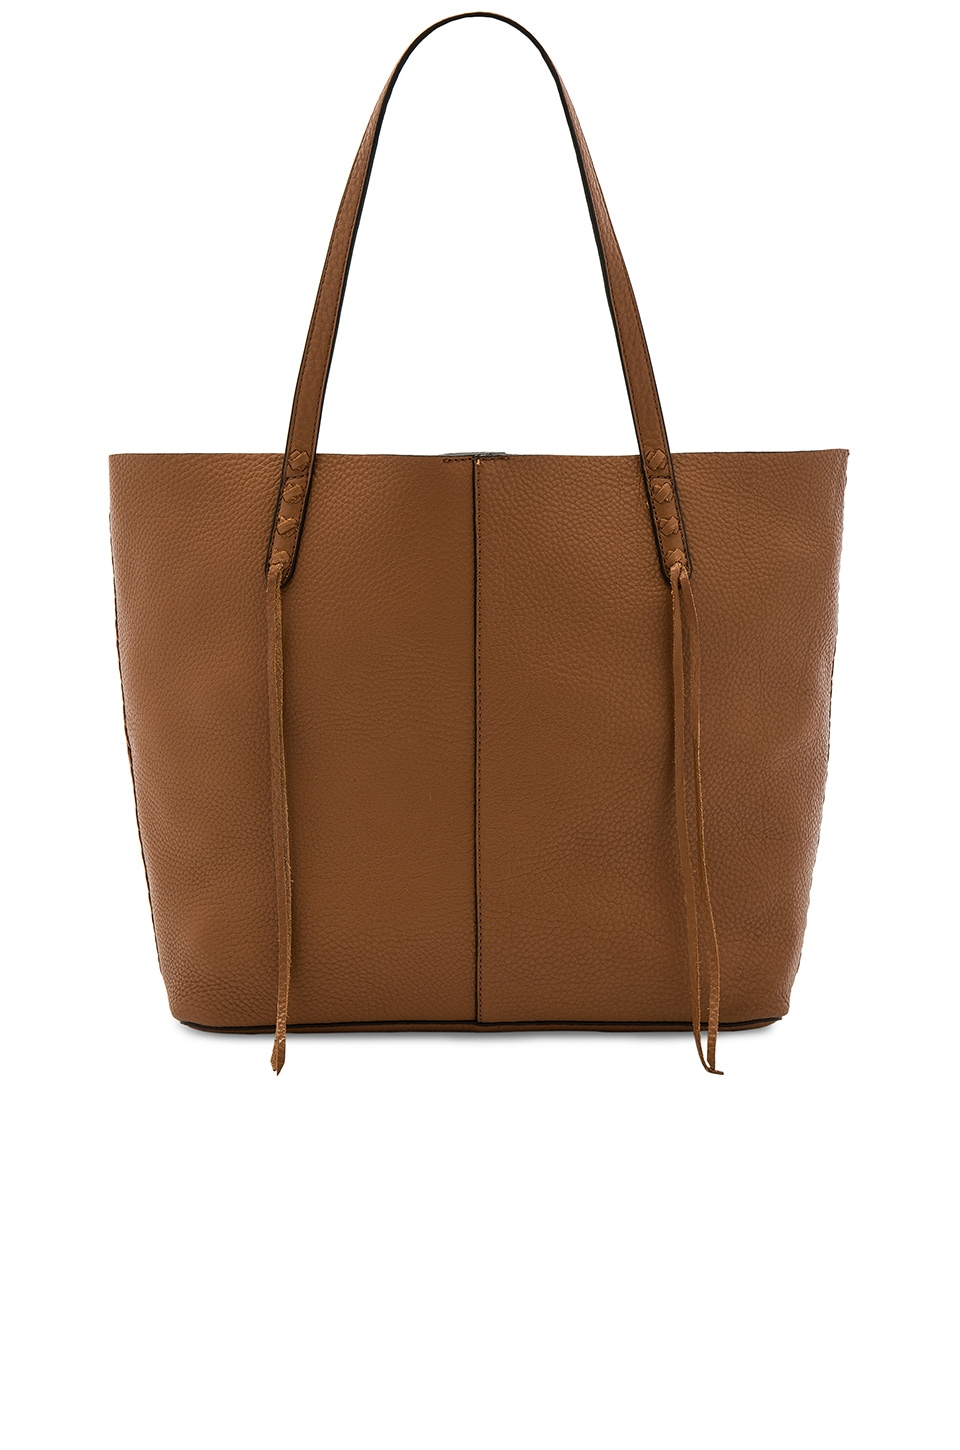 Medium Unlined Tote by Rebecca Minkoff